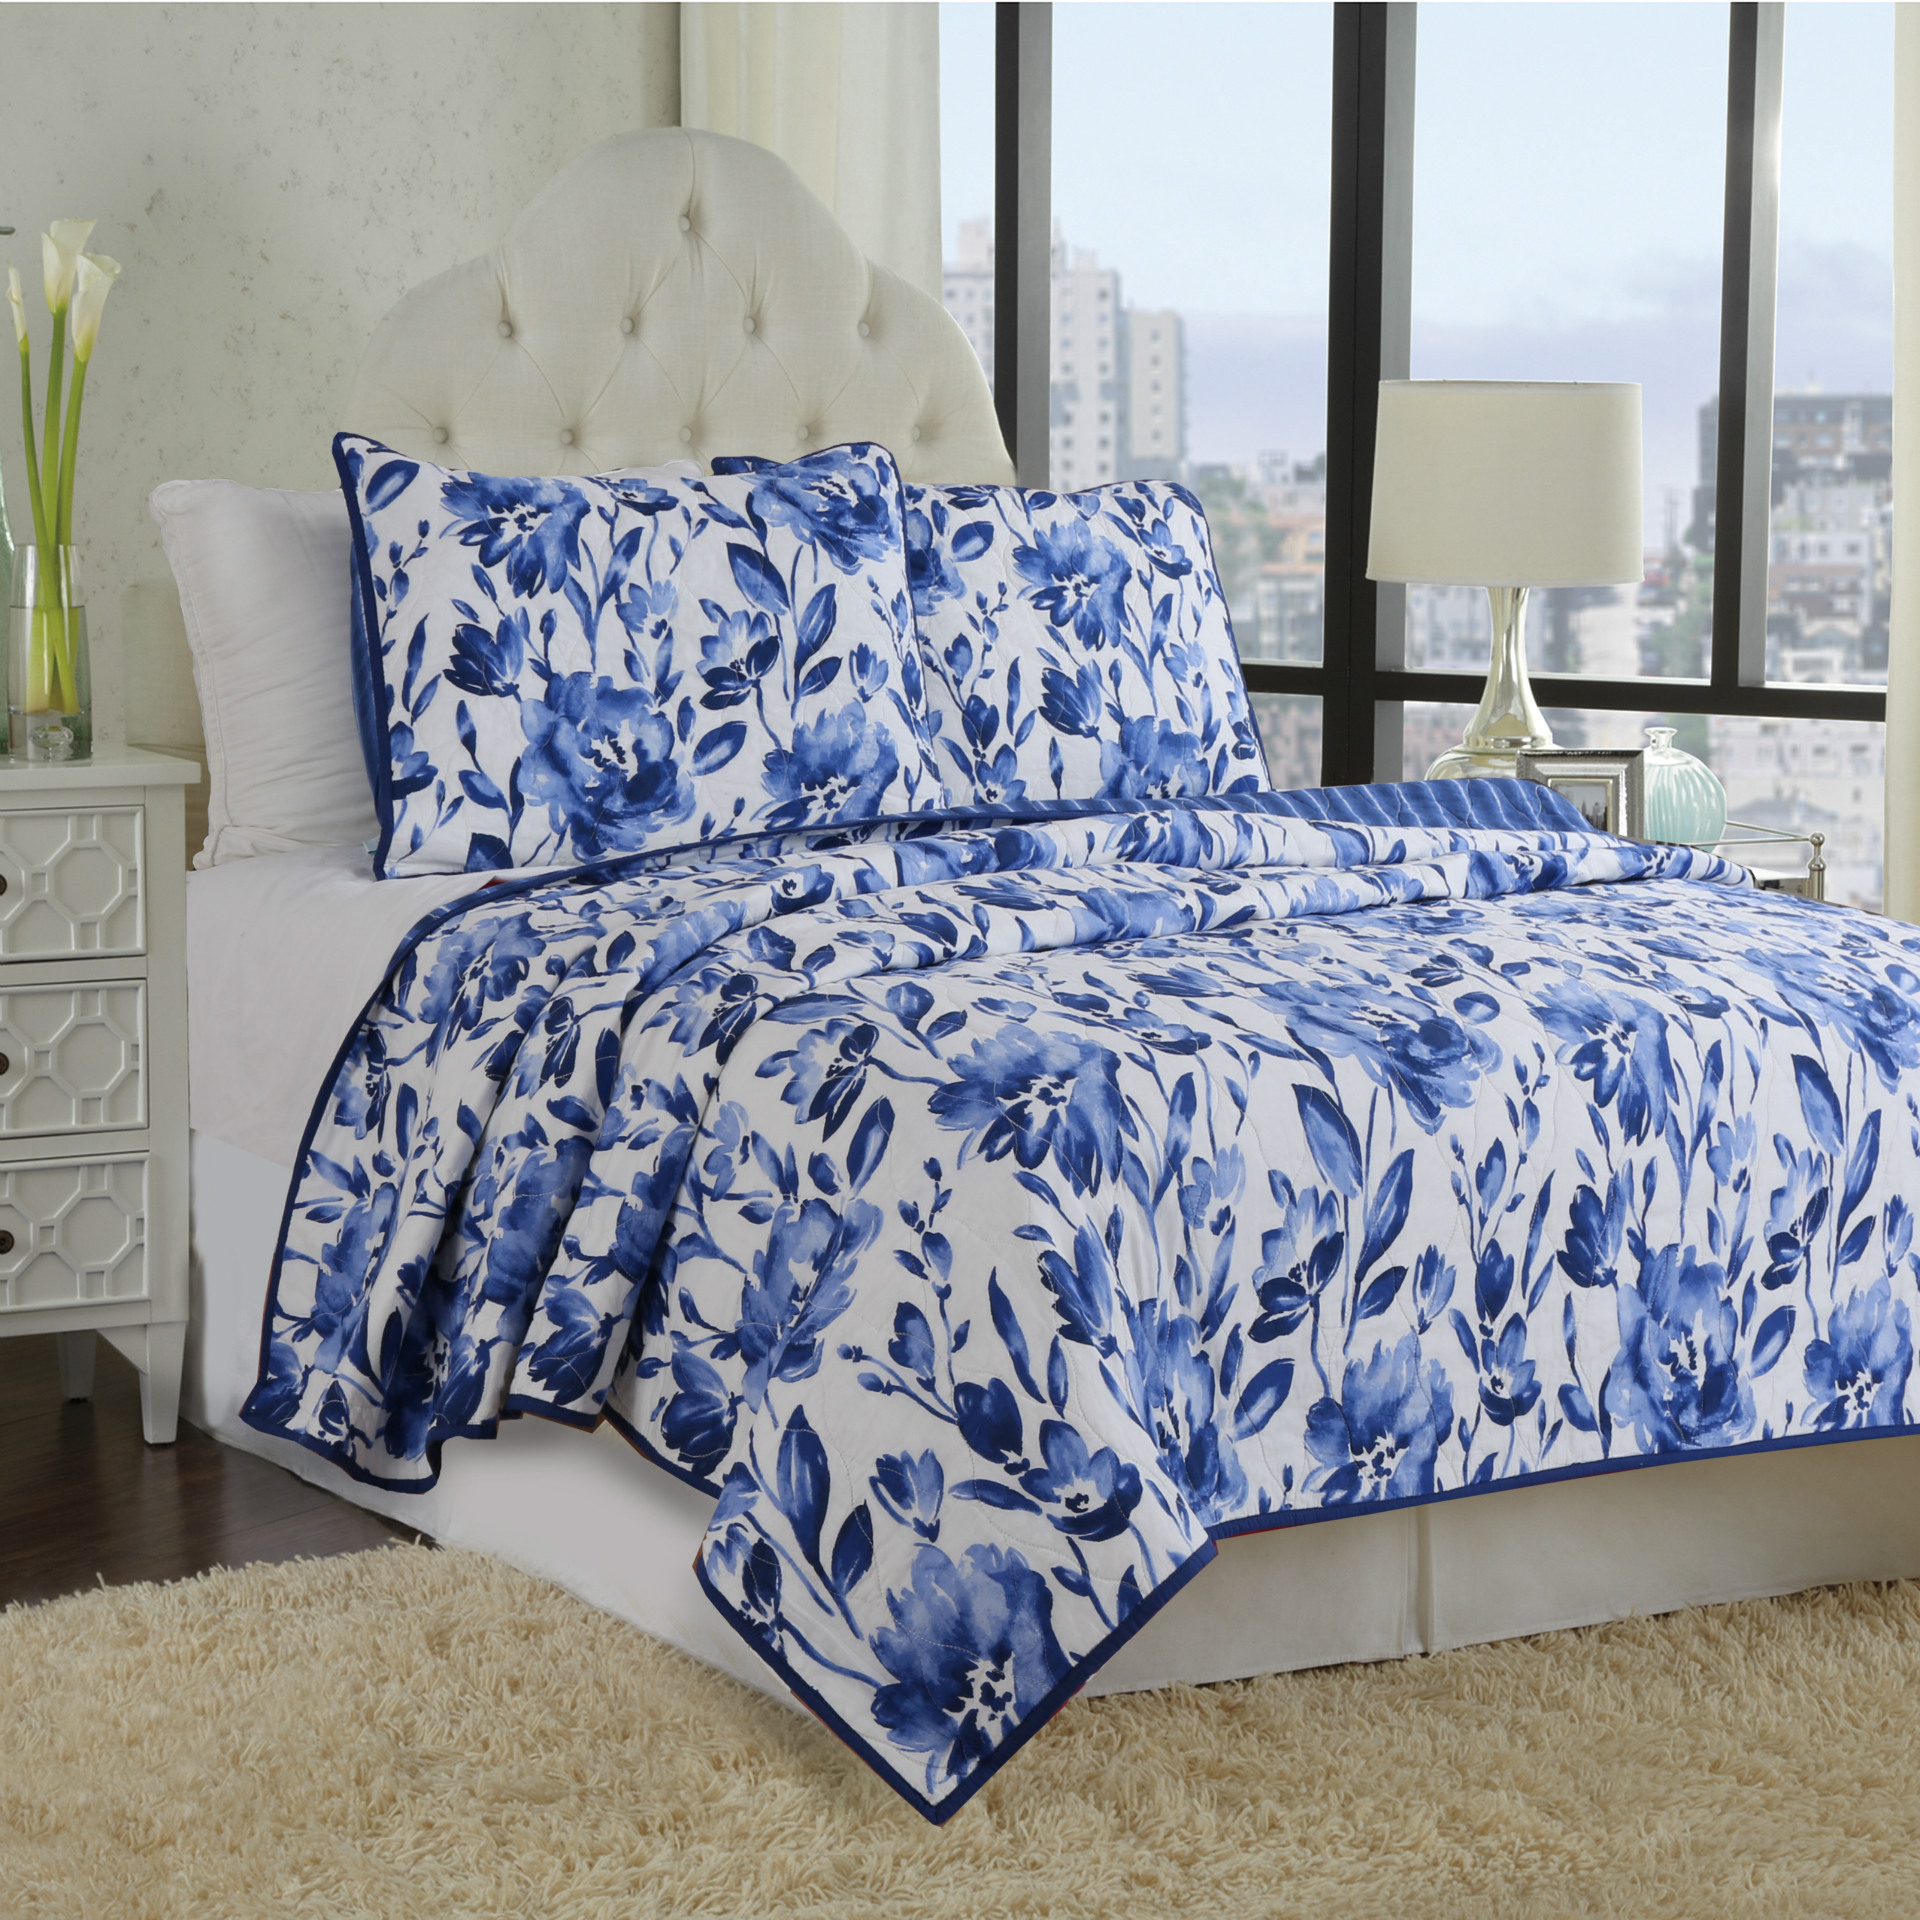 blue and white porcelain 100 cotton quilt bedspread set full queen size 3 piece chinese style floral comforter bed cover set